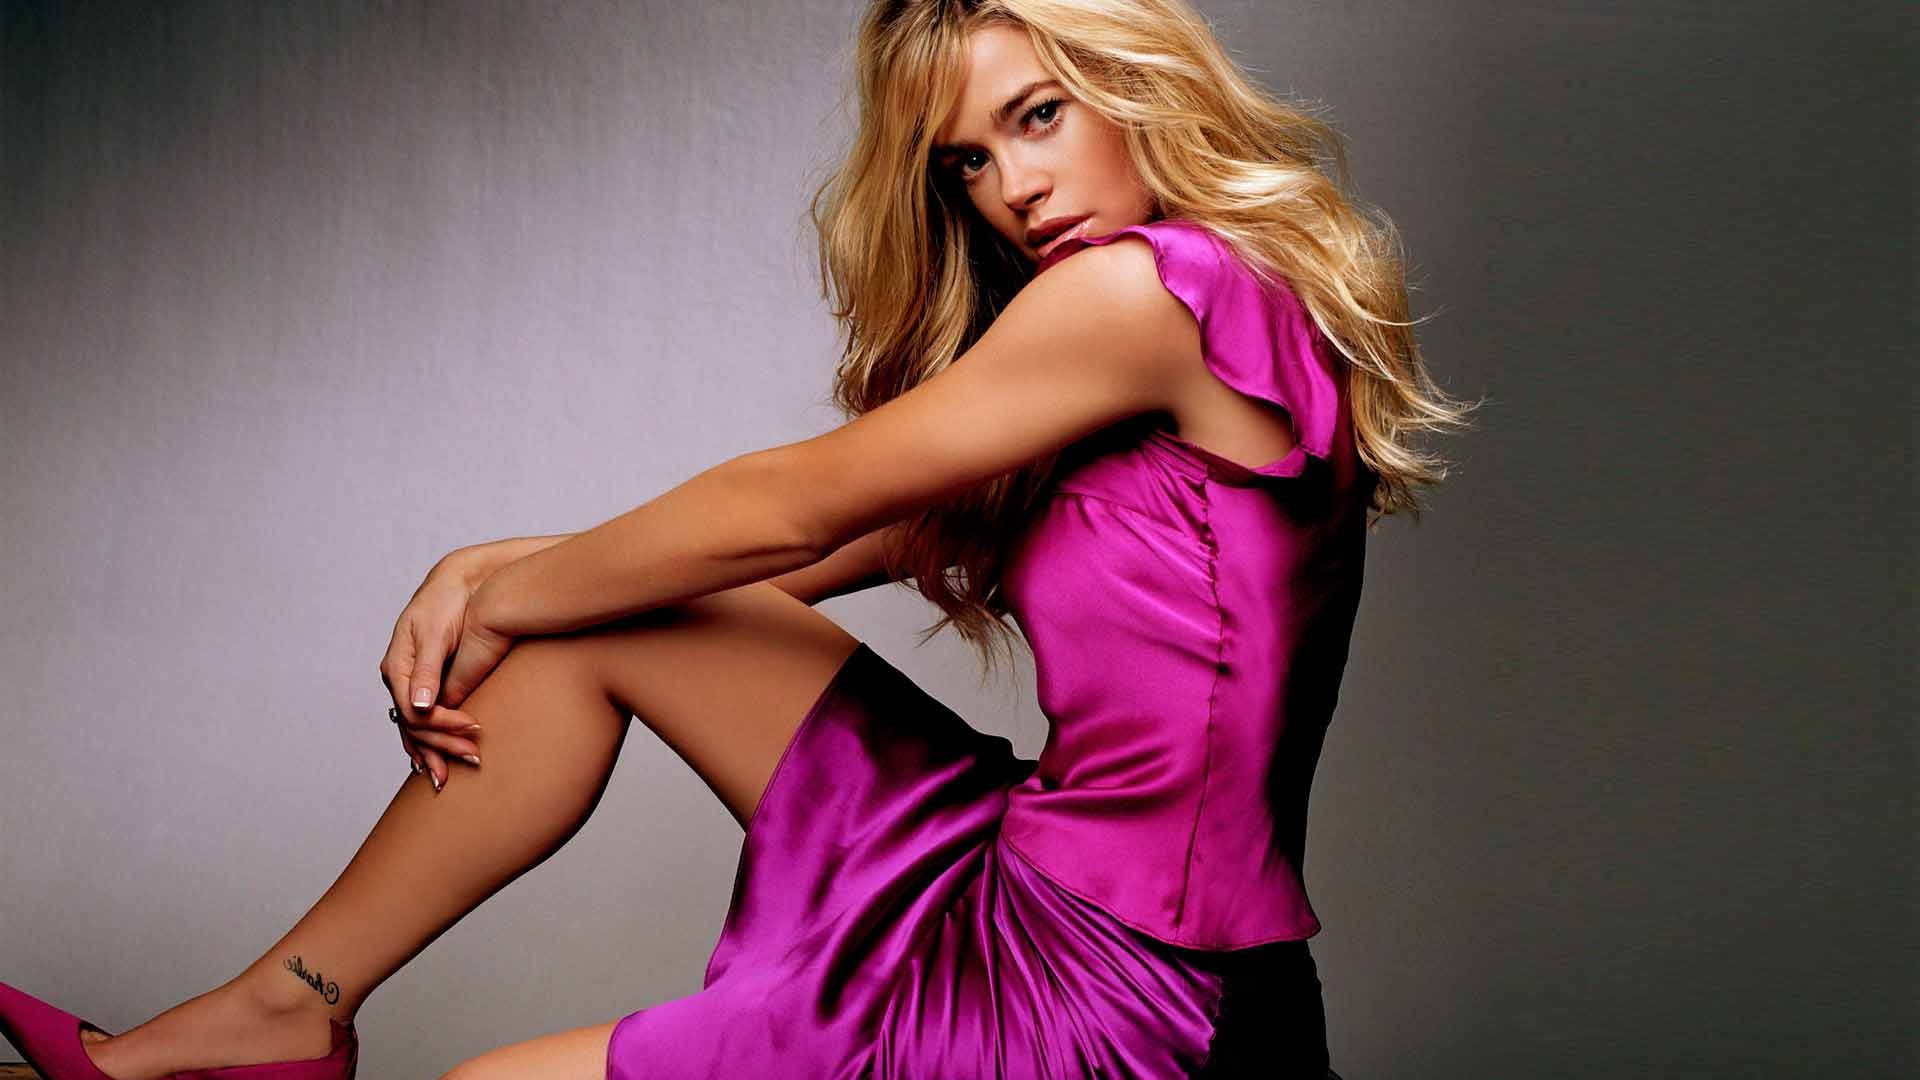 Denise Richards Super Hot HD Wallpapers Free Download HD